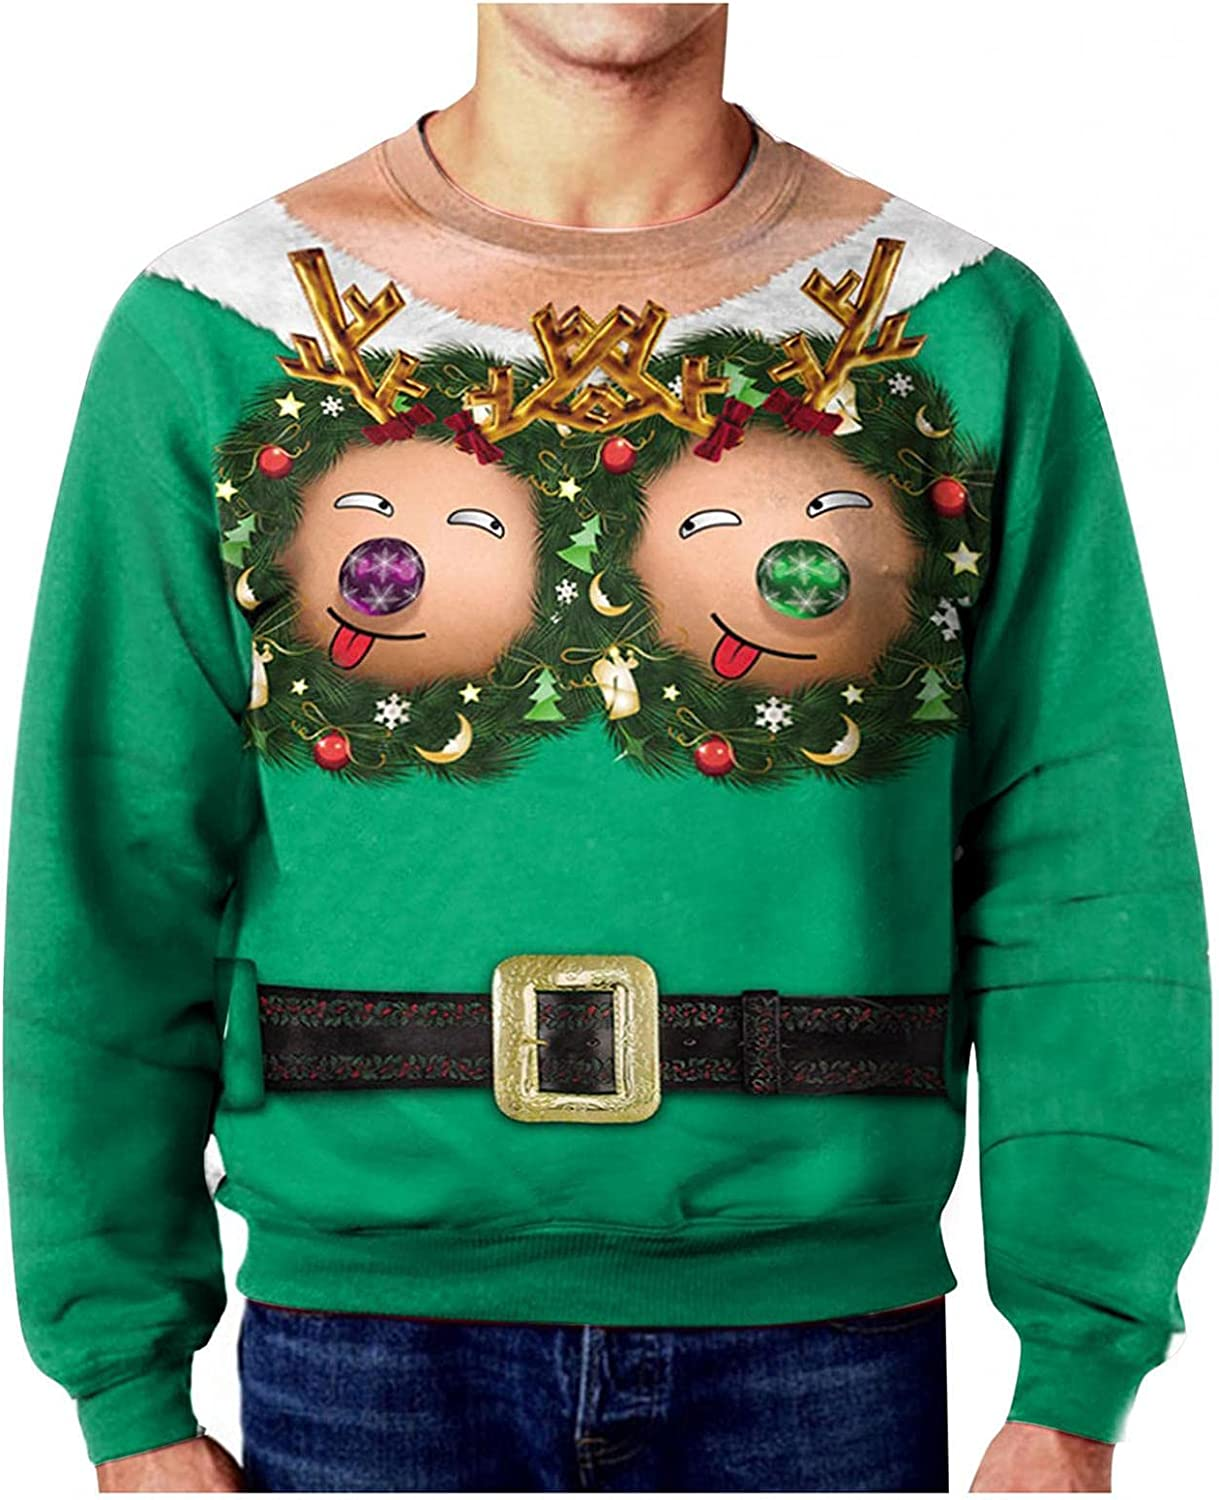 XUNFUN Ugly Christmas Sweatshirts for Men Funny Design 3D Digital Printed Pullover Sweaters Long Sleeve Novelty T-shirts